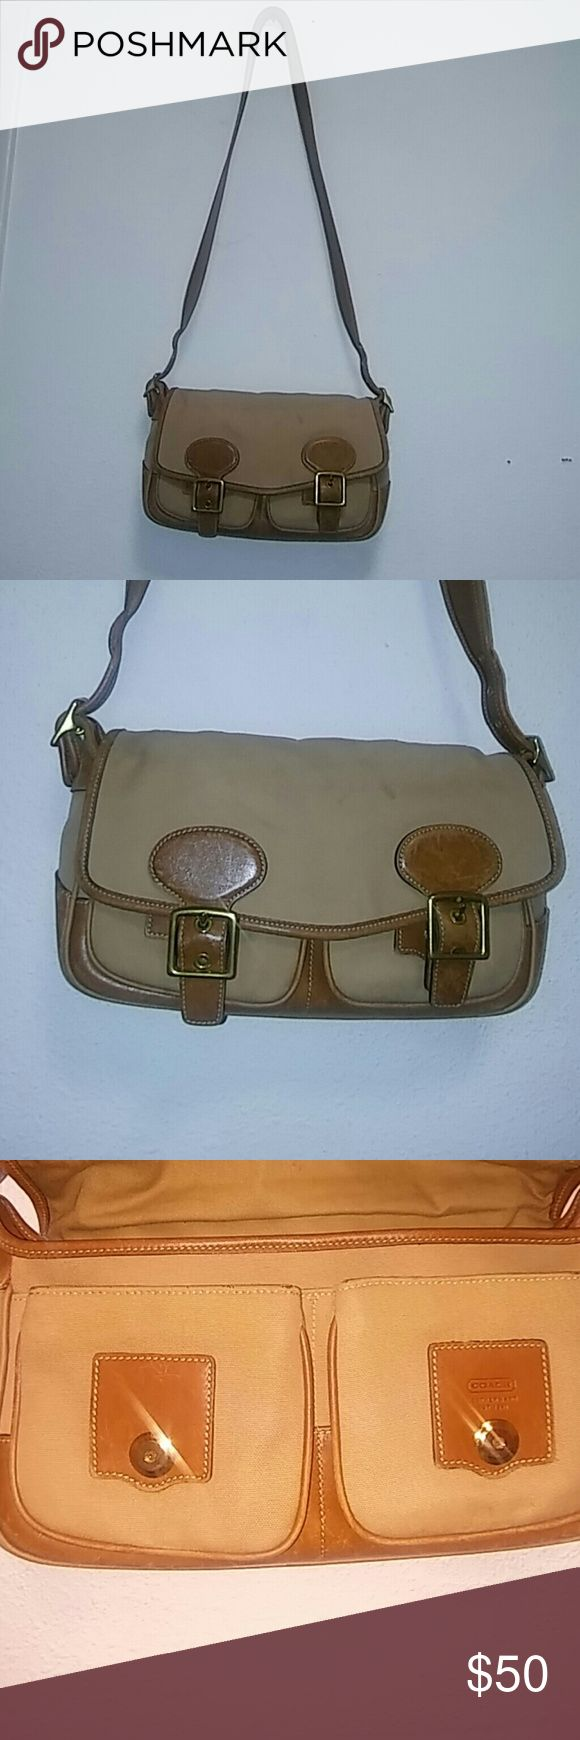 Coach Legacy Flap Canvas Purse Coach Legacy Flap Canvas Purse.  Tan with Brown Leather strap and trim. Coach Bags Crossbody Bags